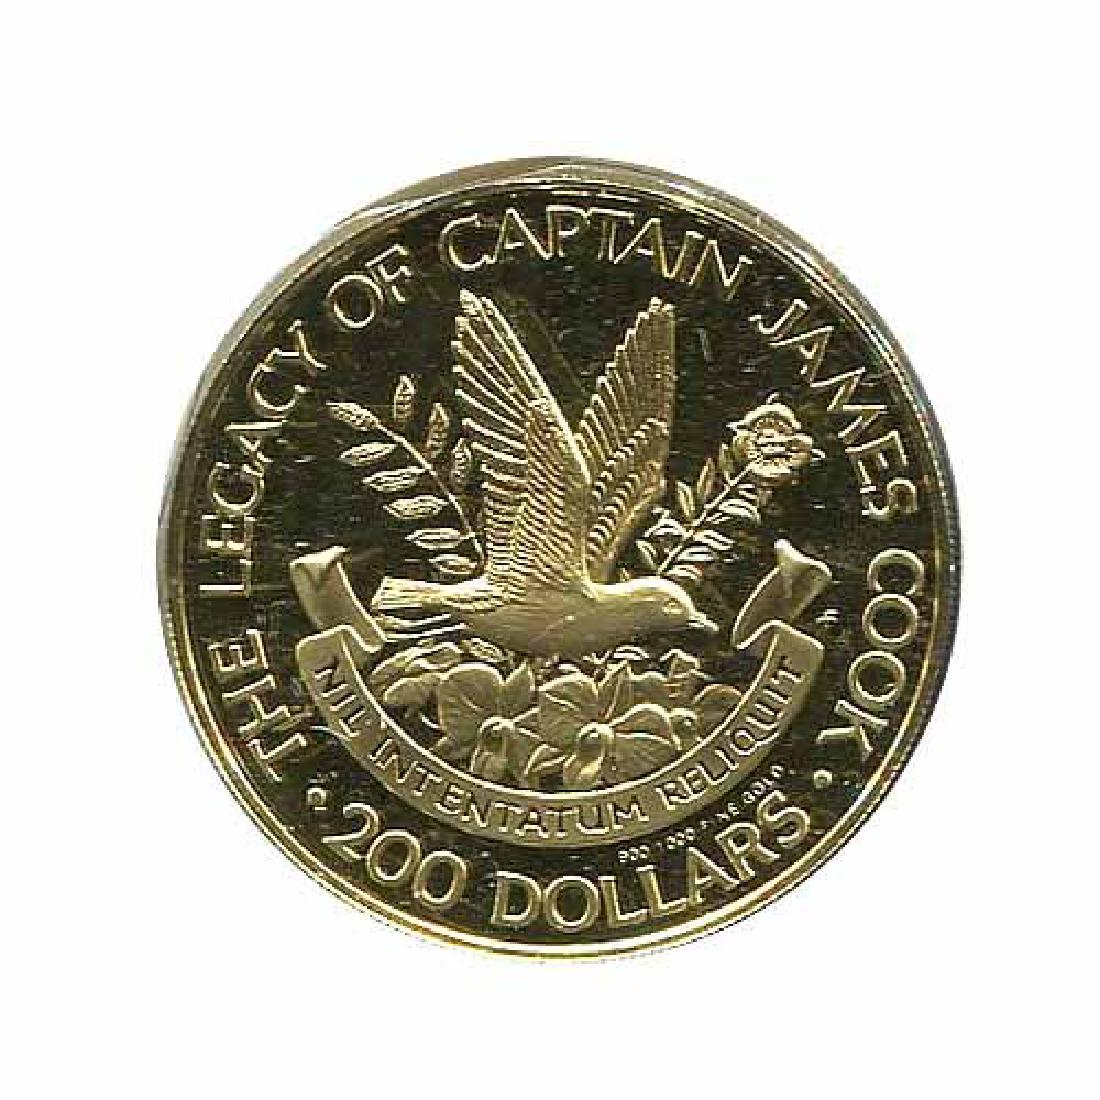 Cook islands $200 Gold 1979 Legacy of Captain Cook